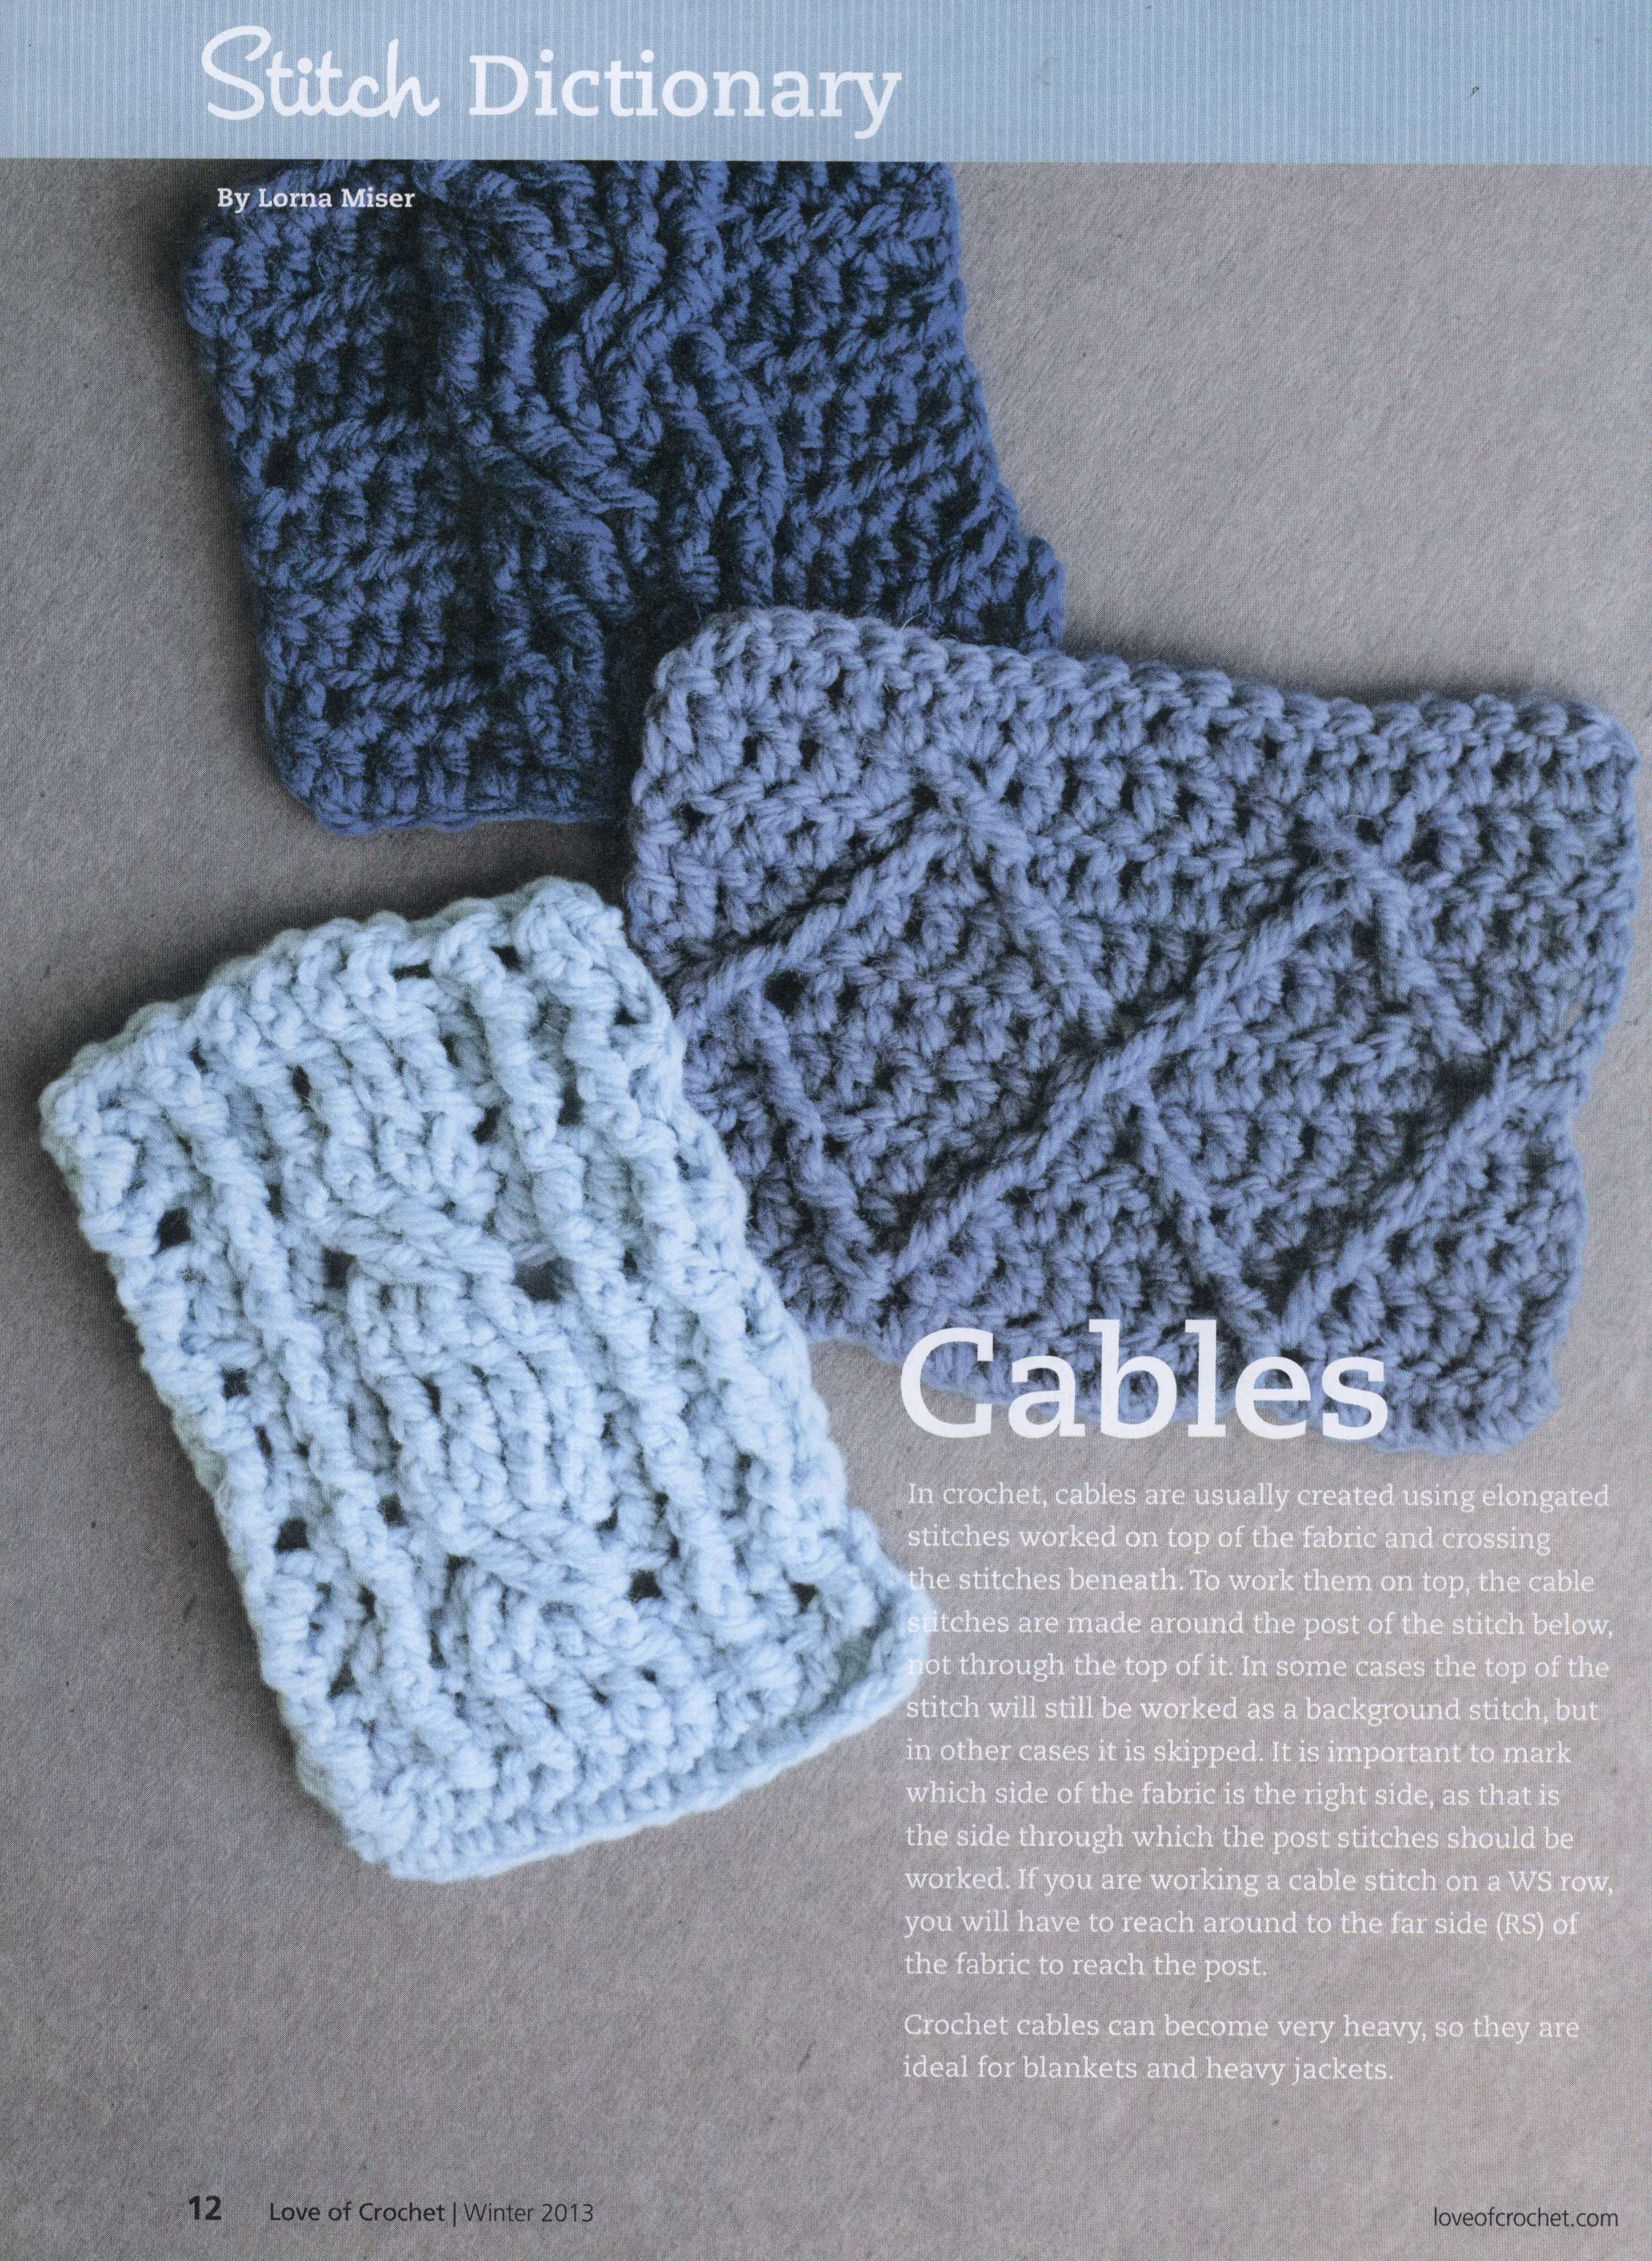 Crochet Cables Elegant Crochet Cable Stitches ⋆ Crochet Kingdom Of Amazing 48 Pics Crochet Cables